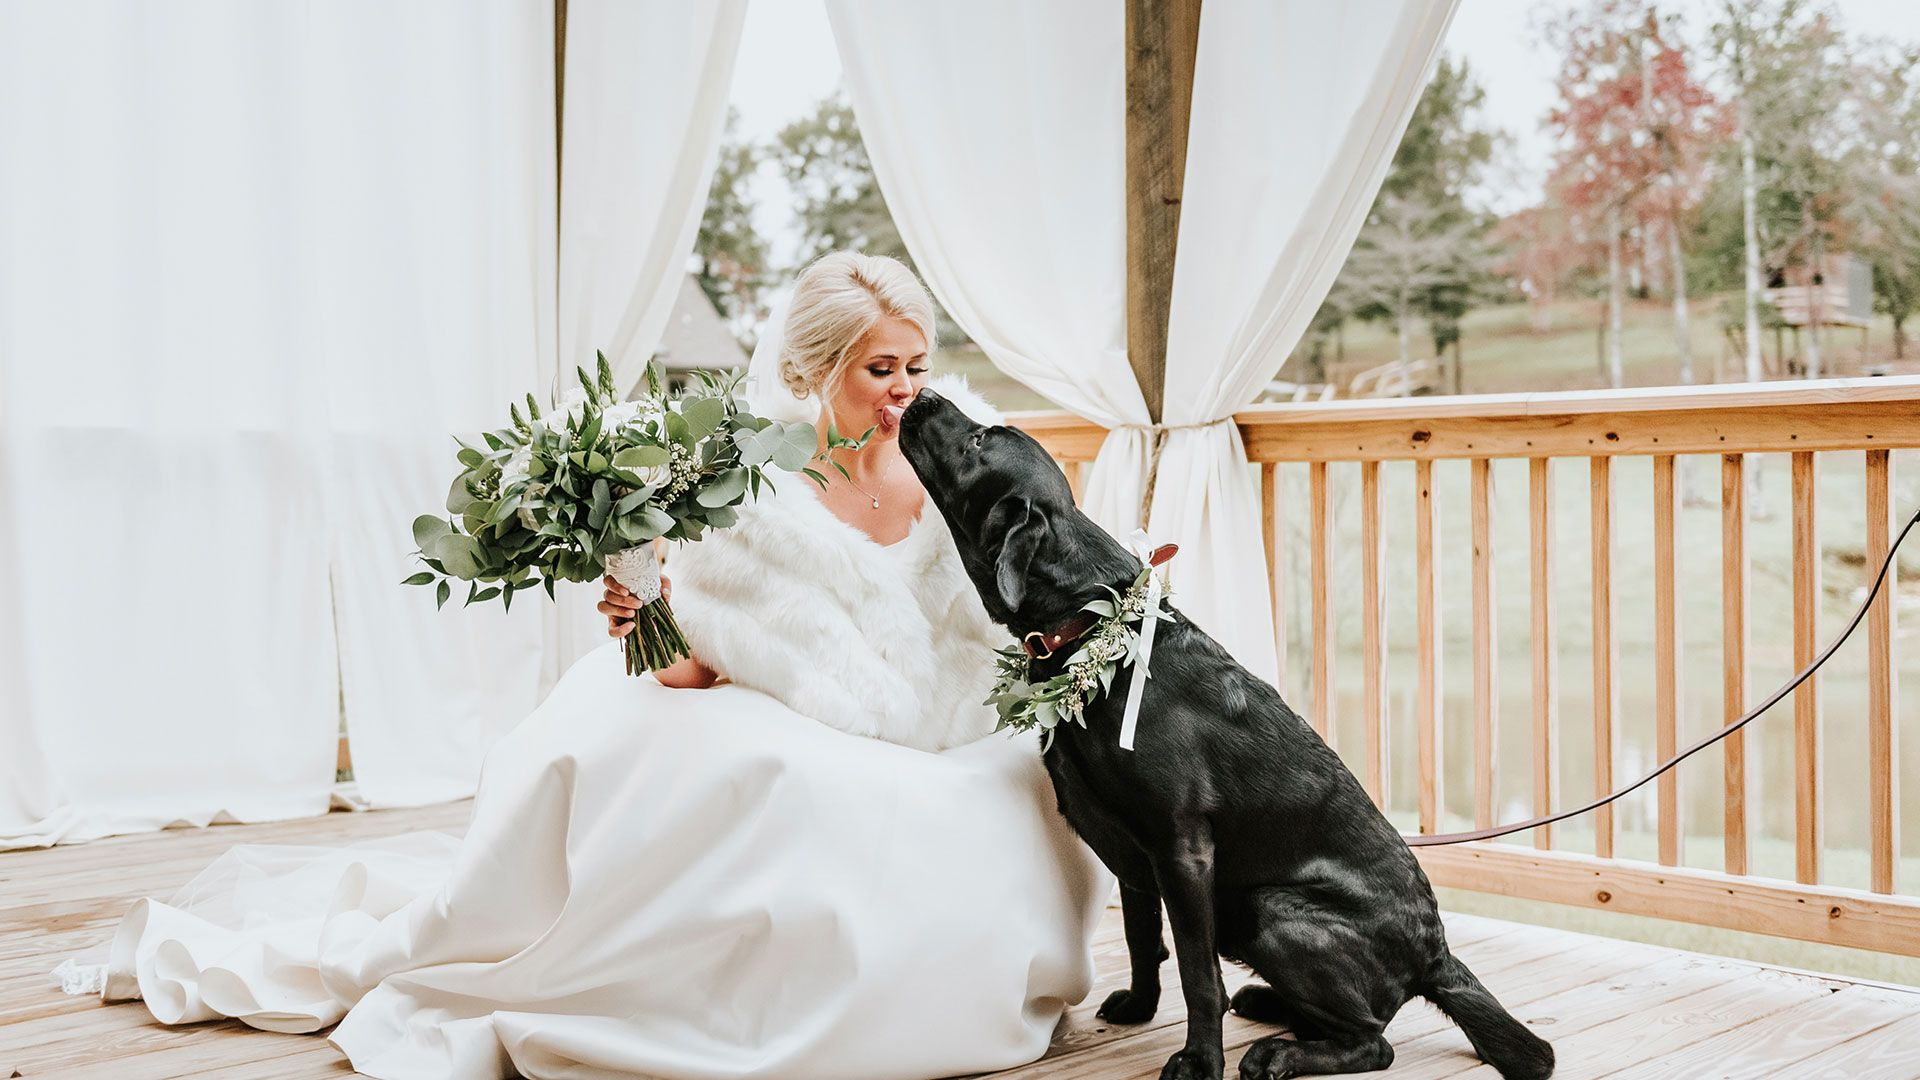 Alabama Bride S First Look Photos With Her Beloved Labrador Are Just The Sweetest Thing Wedding First Look Photos With Dog Dog Wedding